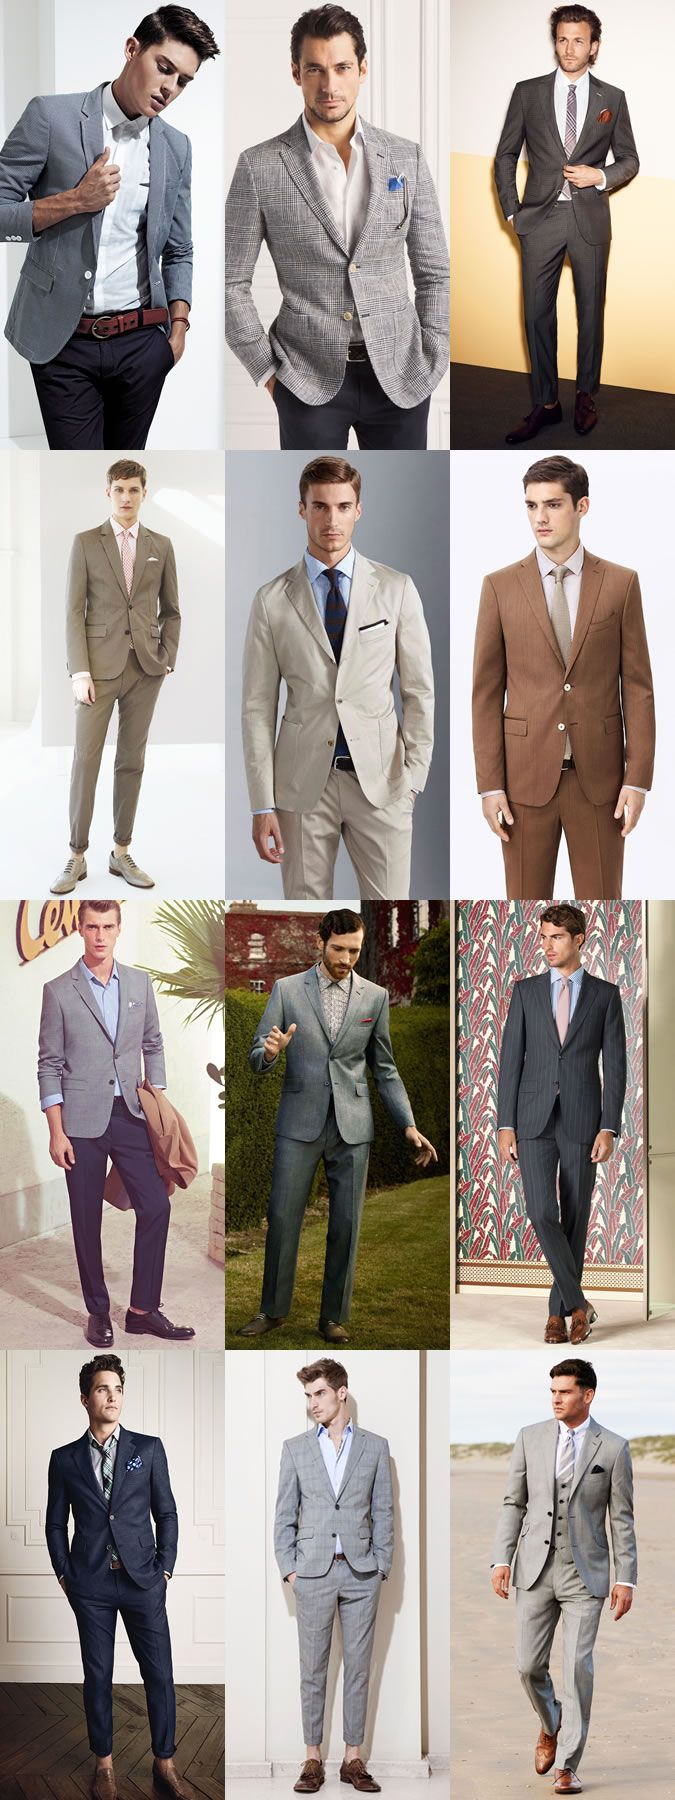 a4876845e1 Men s Summer Wedding Guest Outfits